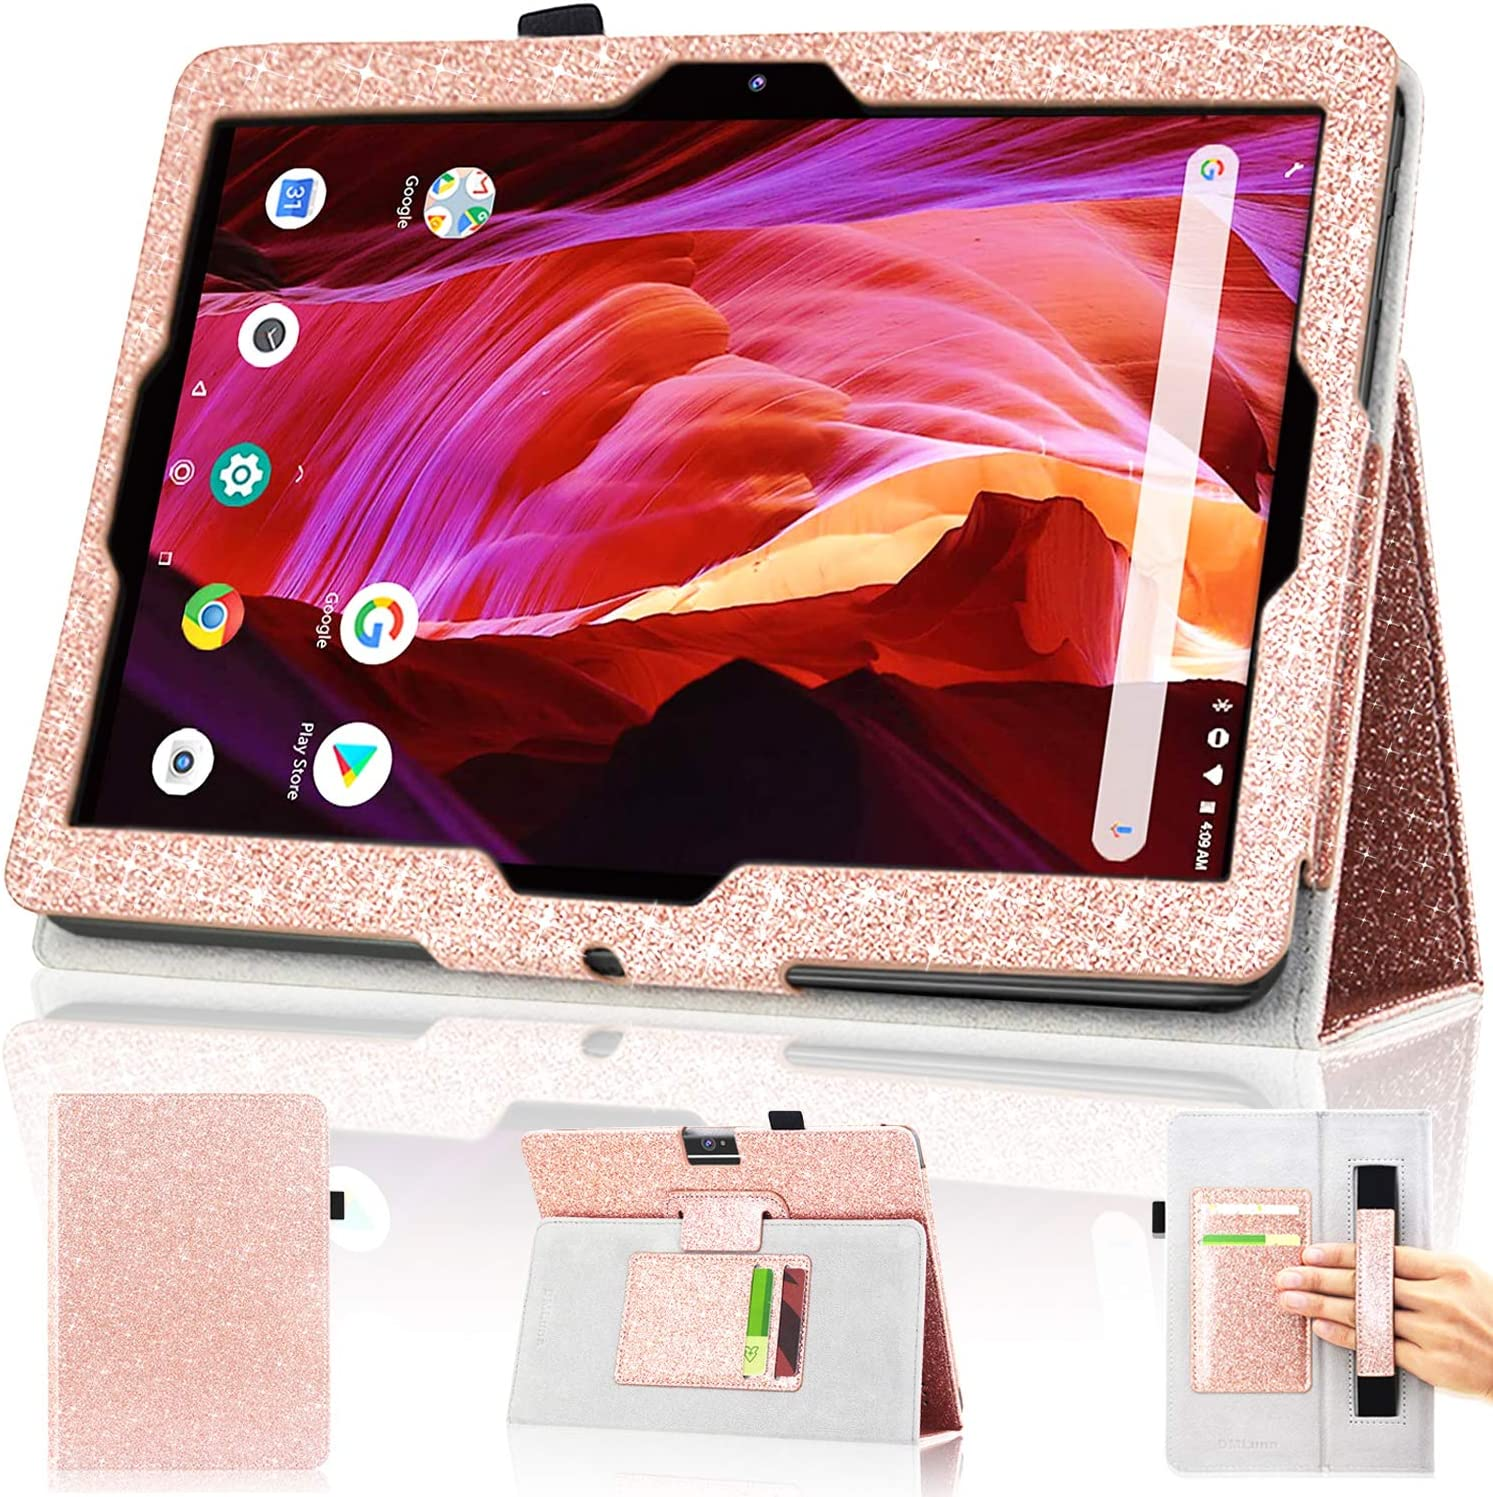 DMLuna Case for Dragon Touch 10 inch K10 / Notepad K10 / Max10 / ZONKO K105 10.1 Tablet, Premium Leather Cover for Lectrus 10.1, Victbing, Hoozo, Winsing 10 with Hand Strap Card Slot, Glitter Rose